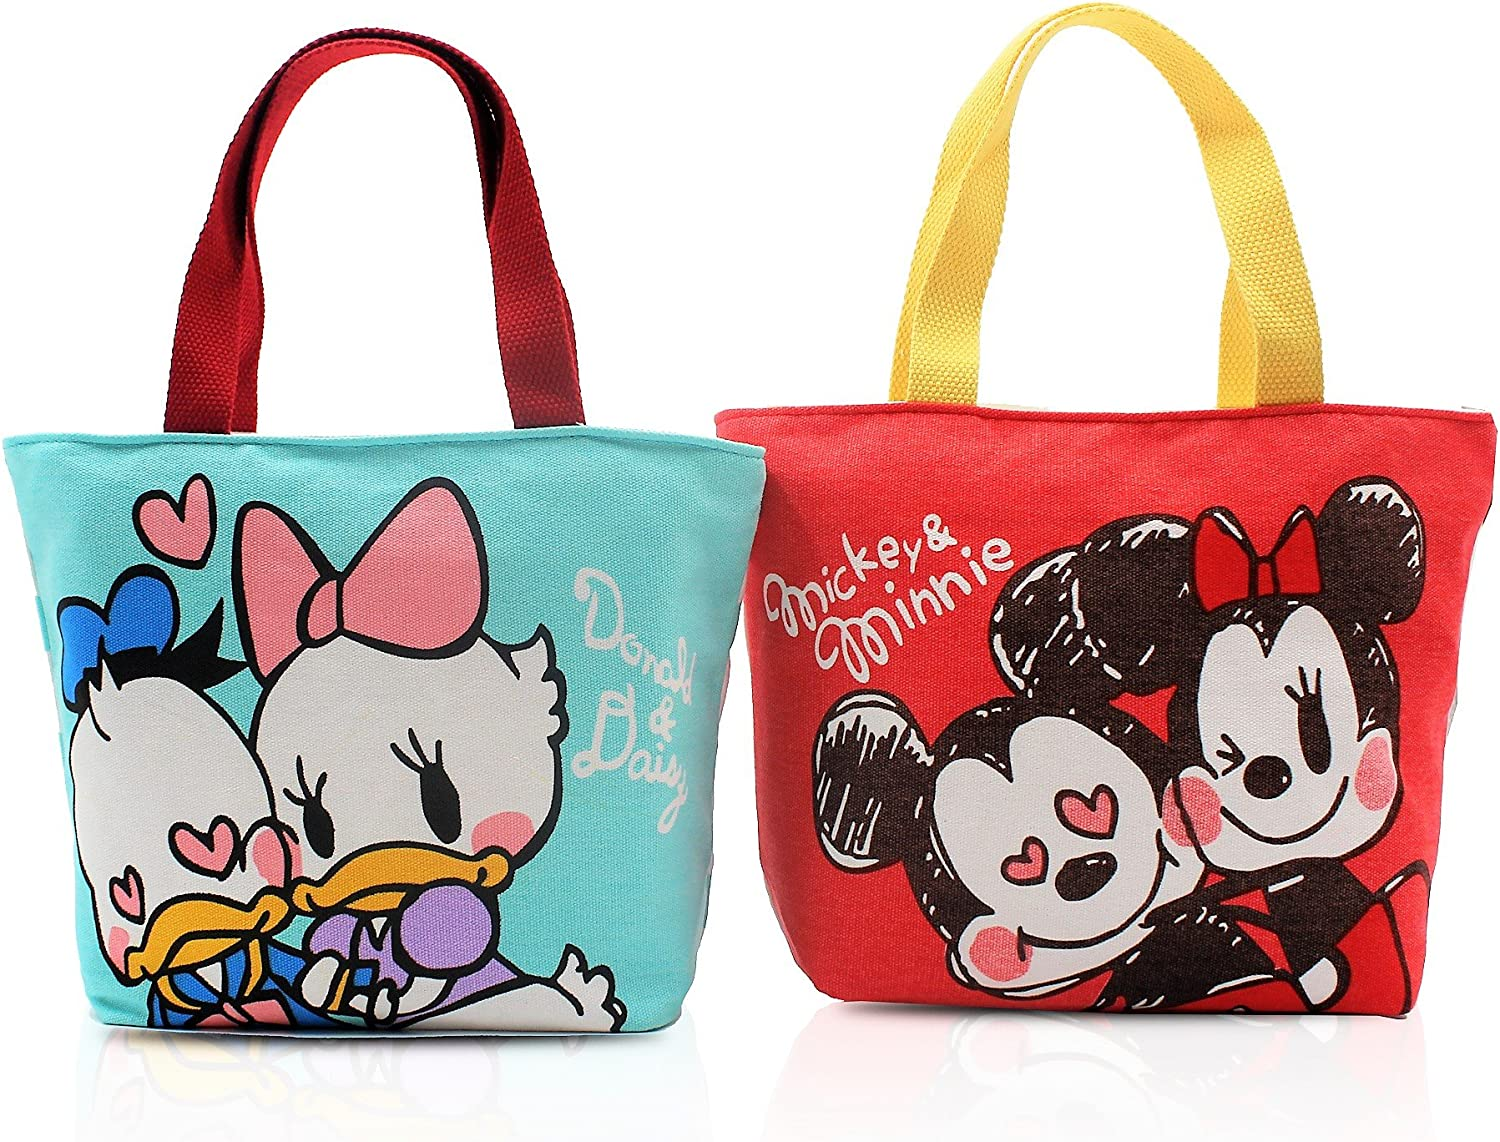 Finex 2 Pcs Set Mickey Minnie Mouse Donald Daisy Duck Canvas Zippered Tote with Top Carry Handles Love Sweet Coupl Hand Bag - Gym Makeup Diaper Reusable Grocery Lunch